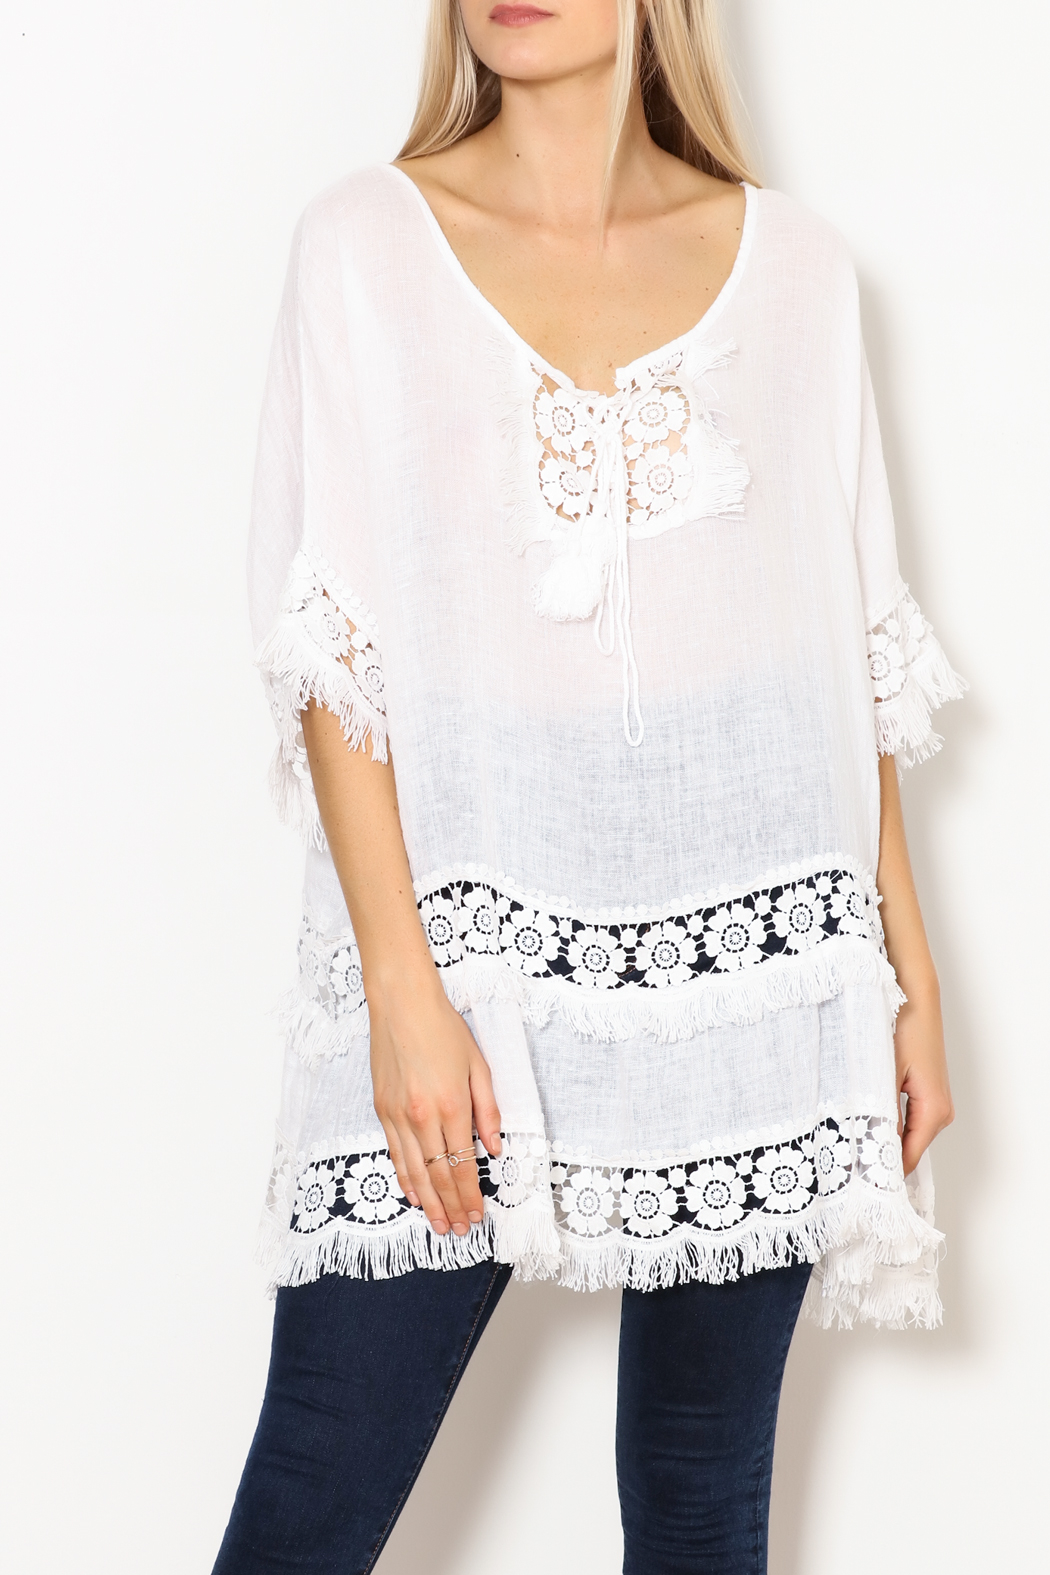 SCANDAL Art White Linen & Lace & Fringe Tunic - Front Full Image